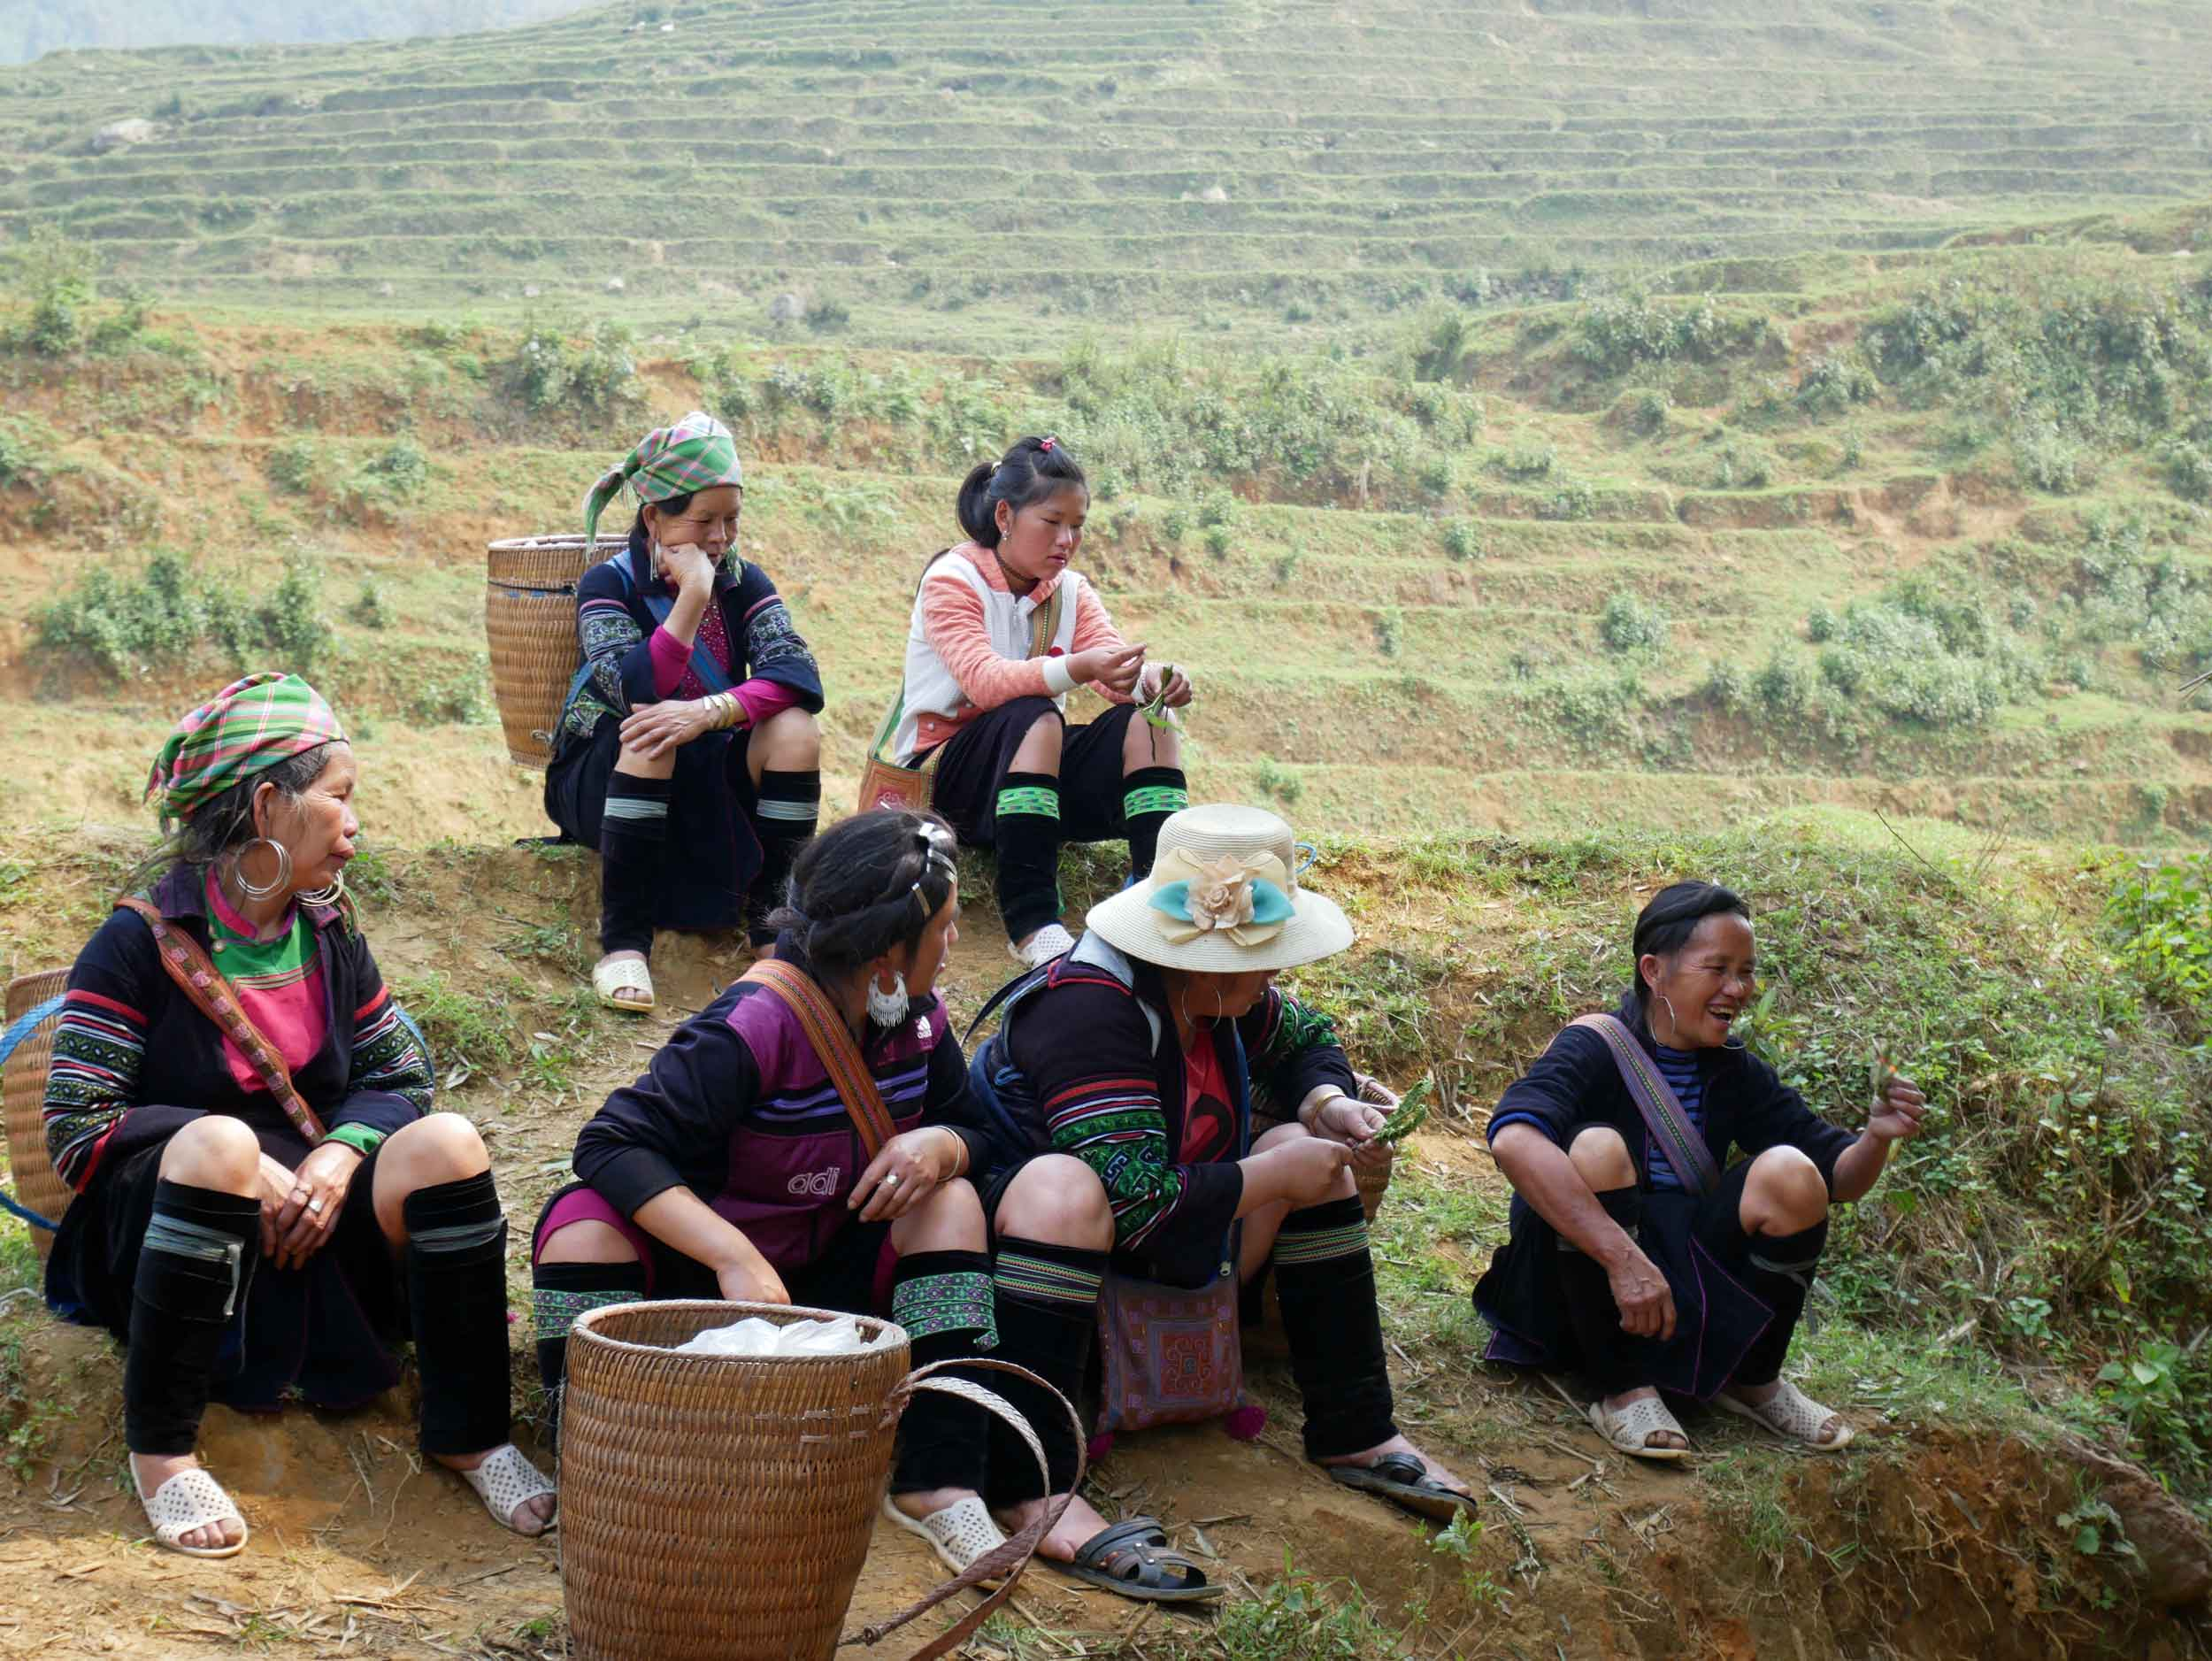 A group of gossiping Hmong tribeswomen briefly pausing from their daily commute with tourists (Mar 24).